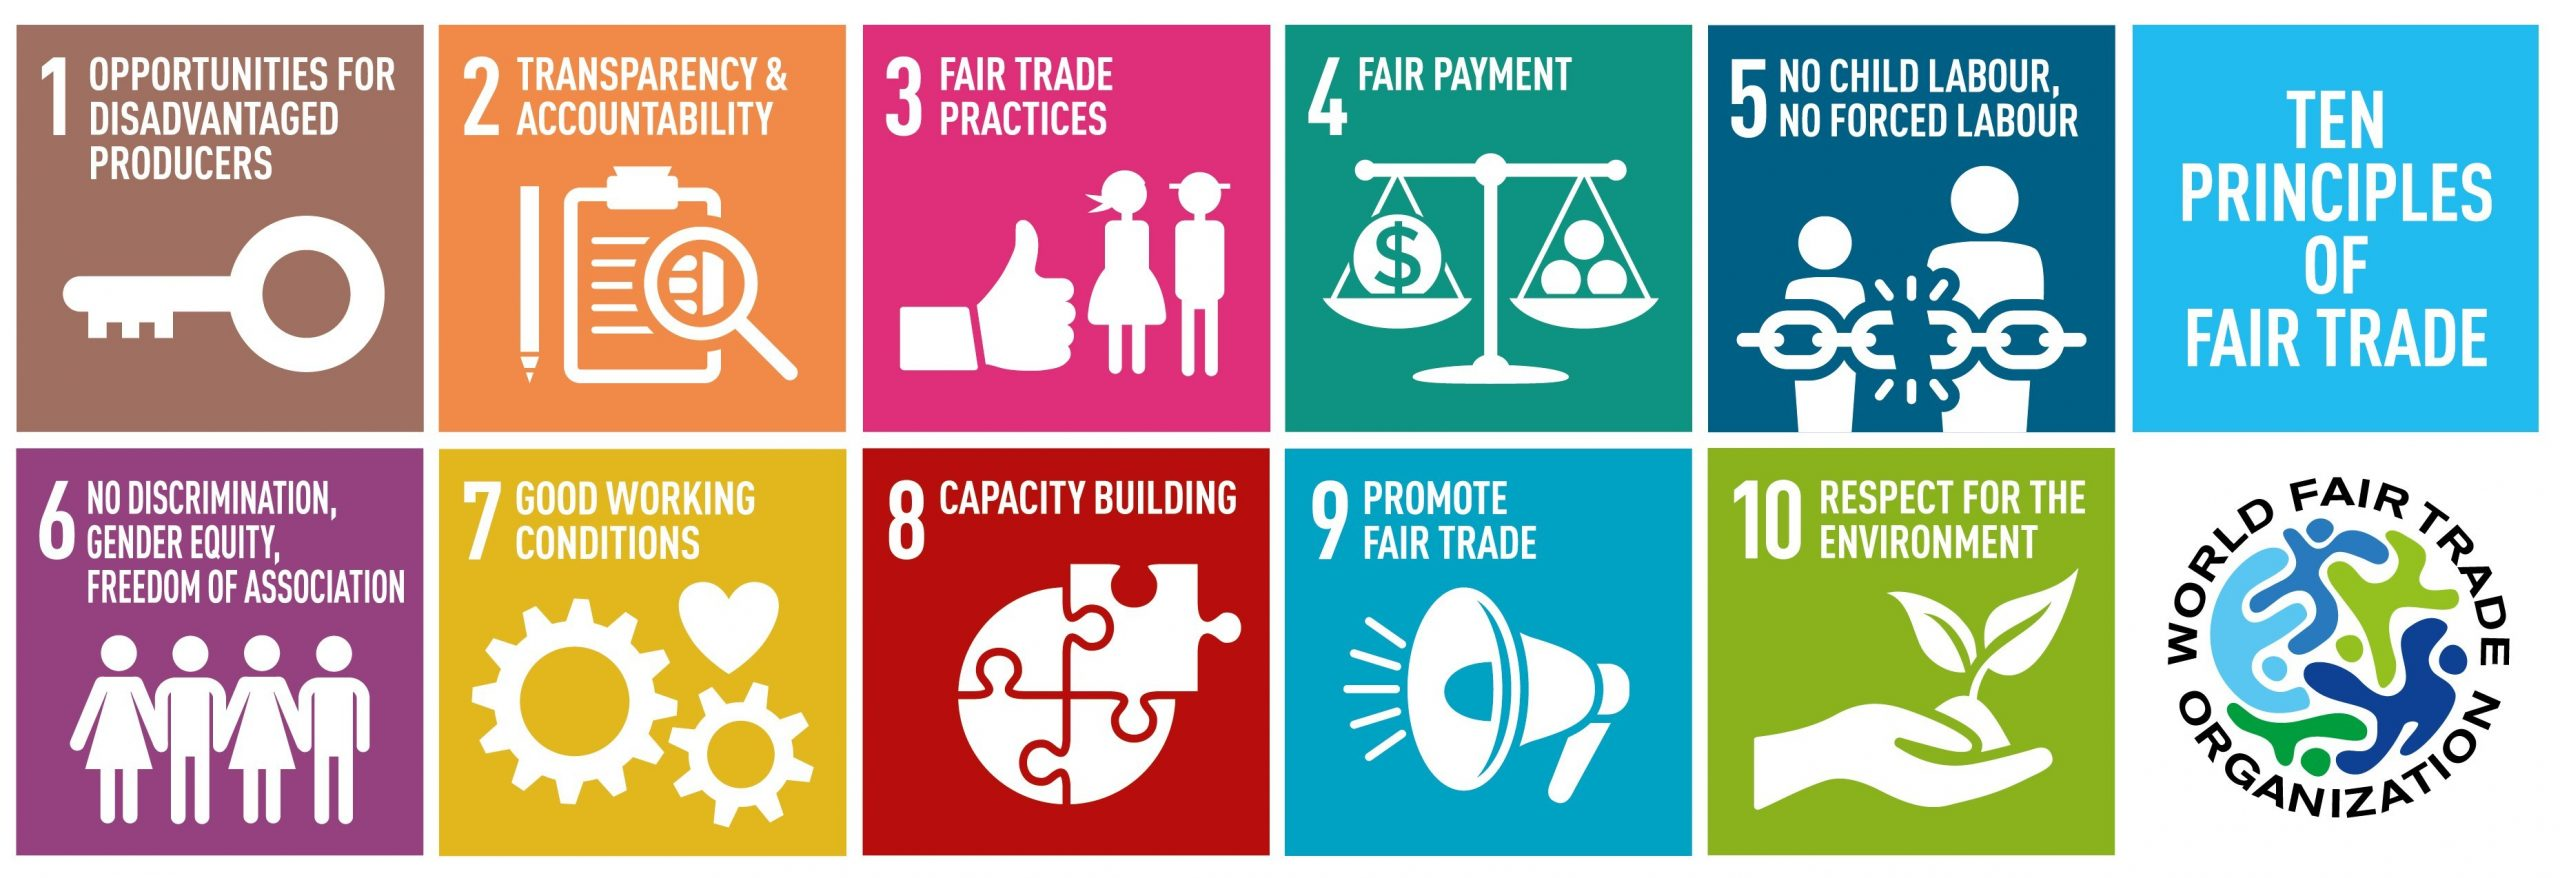 10 Principles of Fair Trade